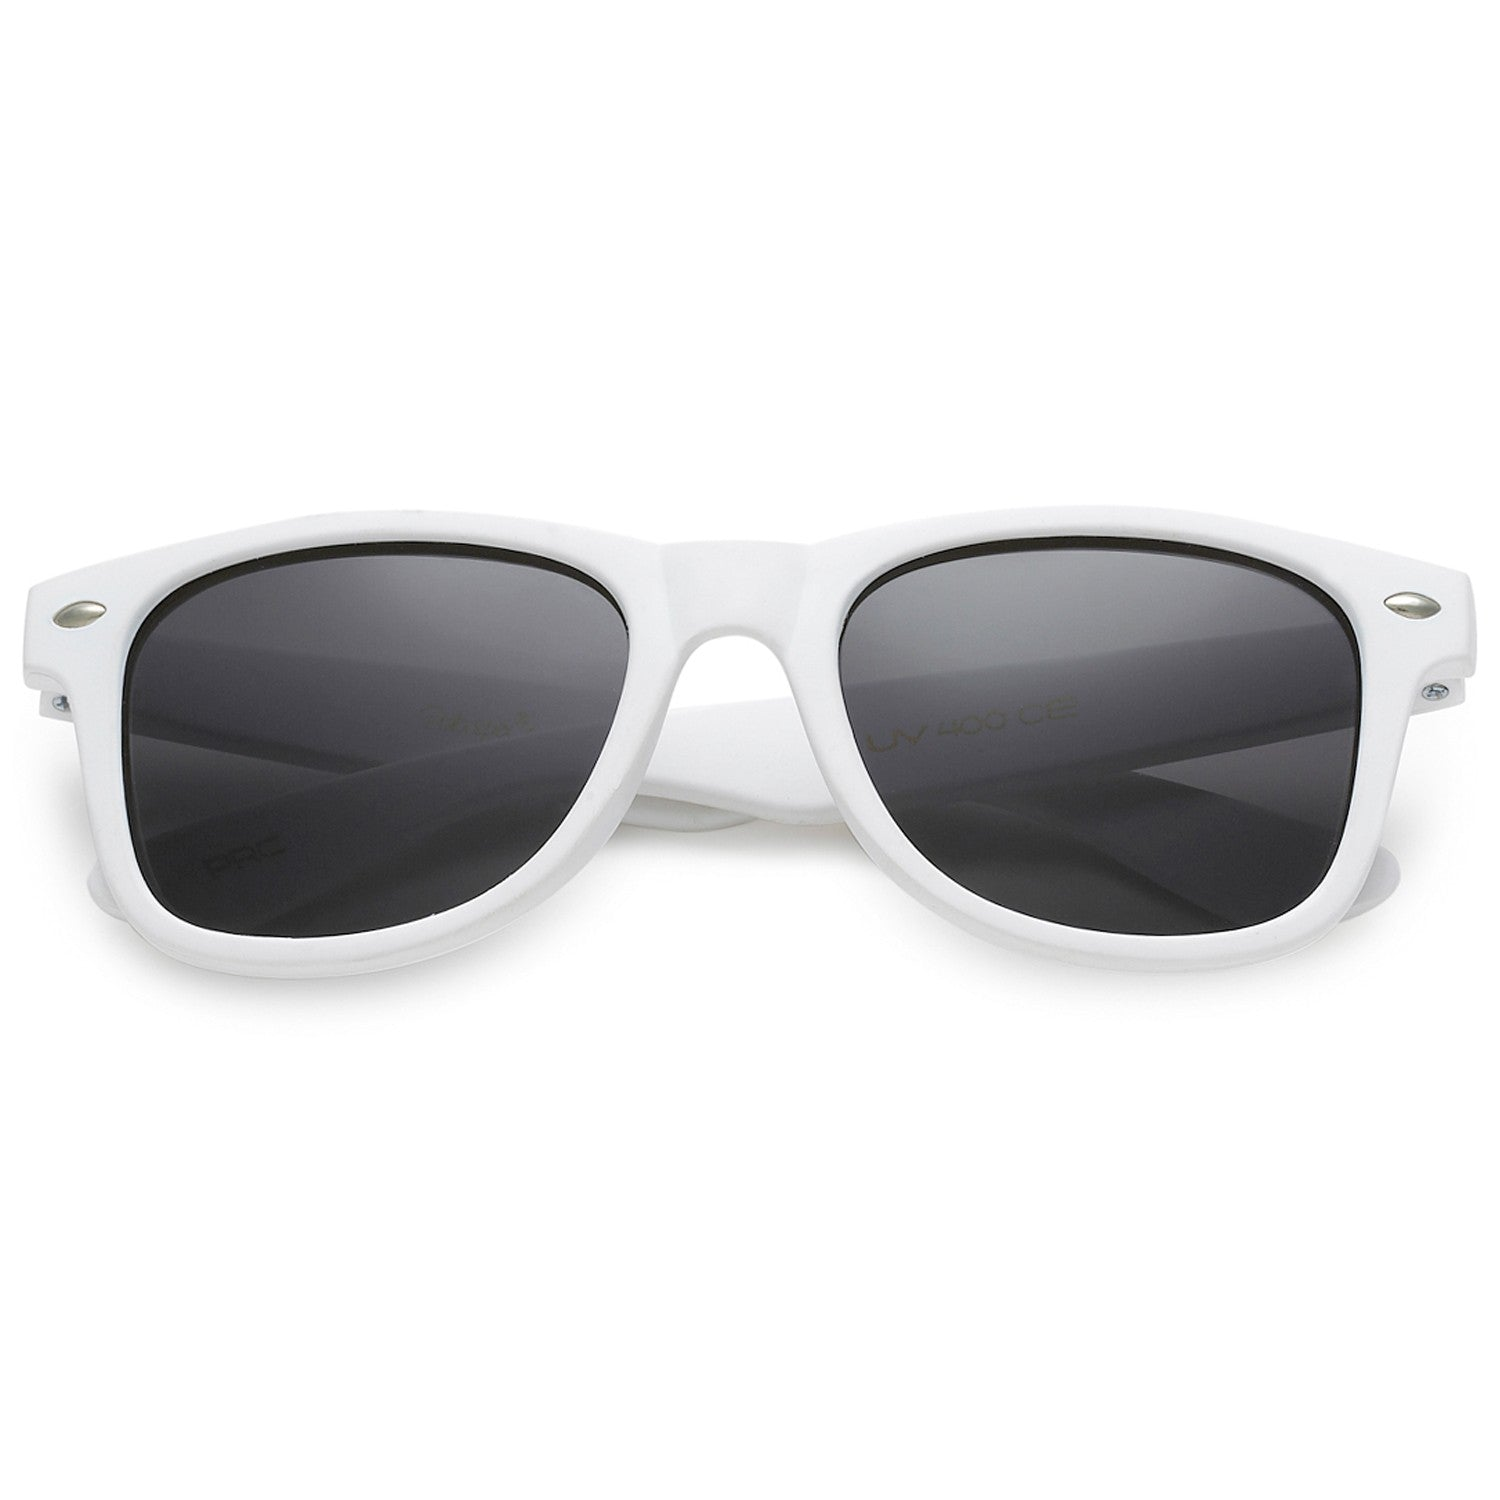 Polarspex Polarized 80's Retro Style Kids Sunglasses with Rubberized Soft White Frames and Polarized Smoke Lenses for Boys and Girls